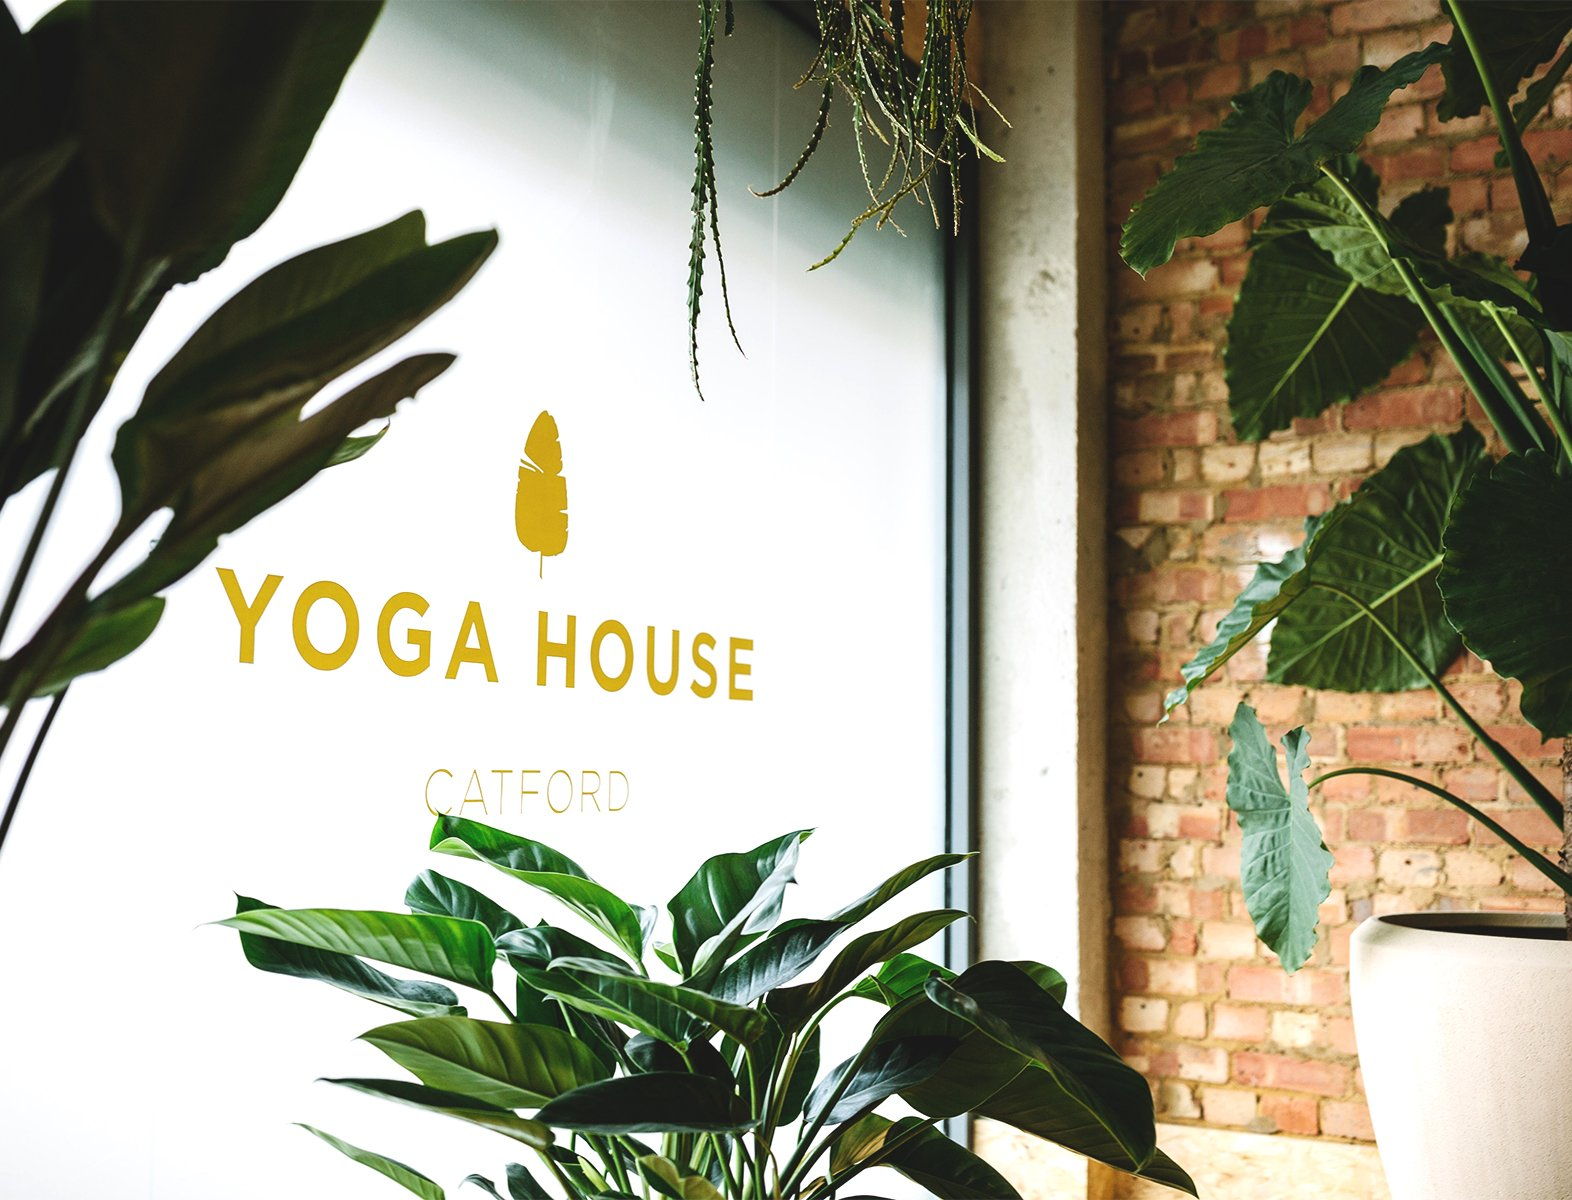 Yoga House London, Yoga Studio and Classes in South East London, Catford and Lee